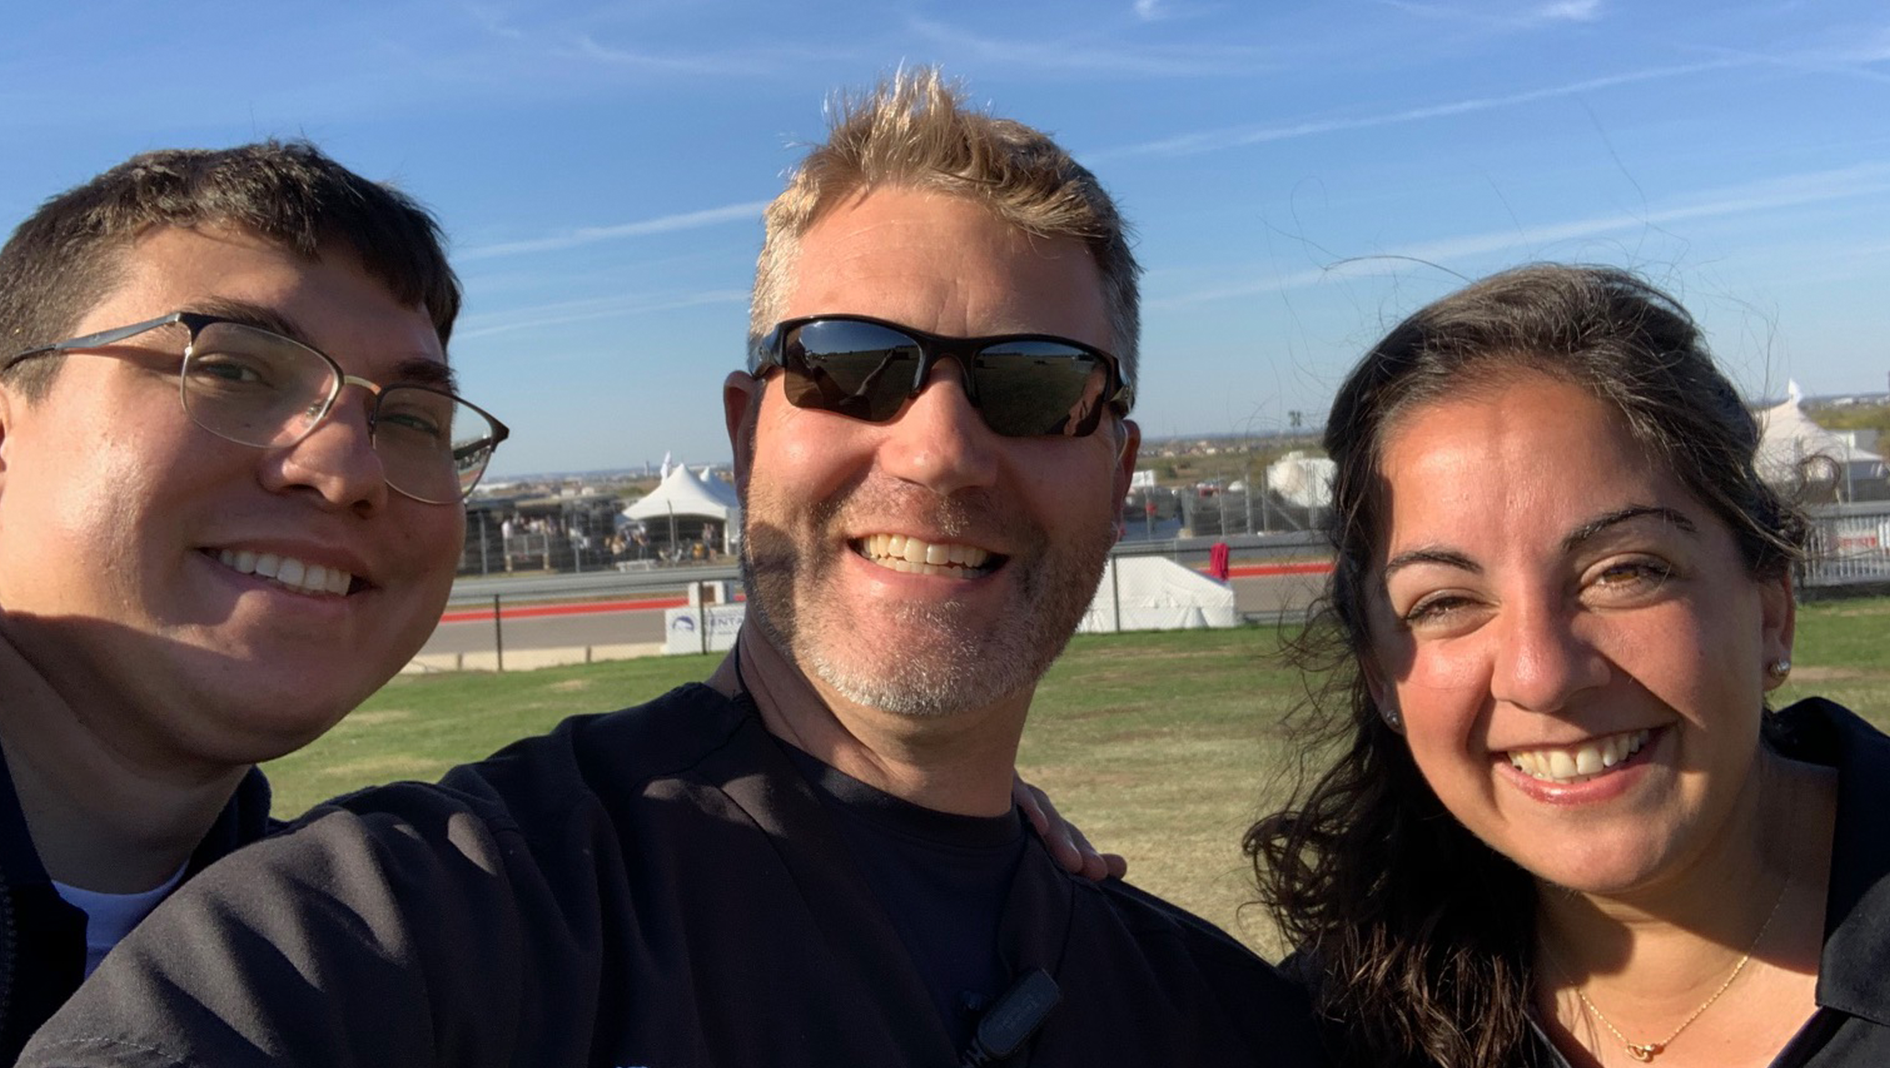 Three EMS physicians smiling.